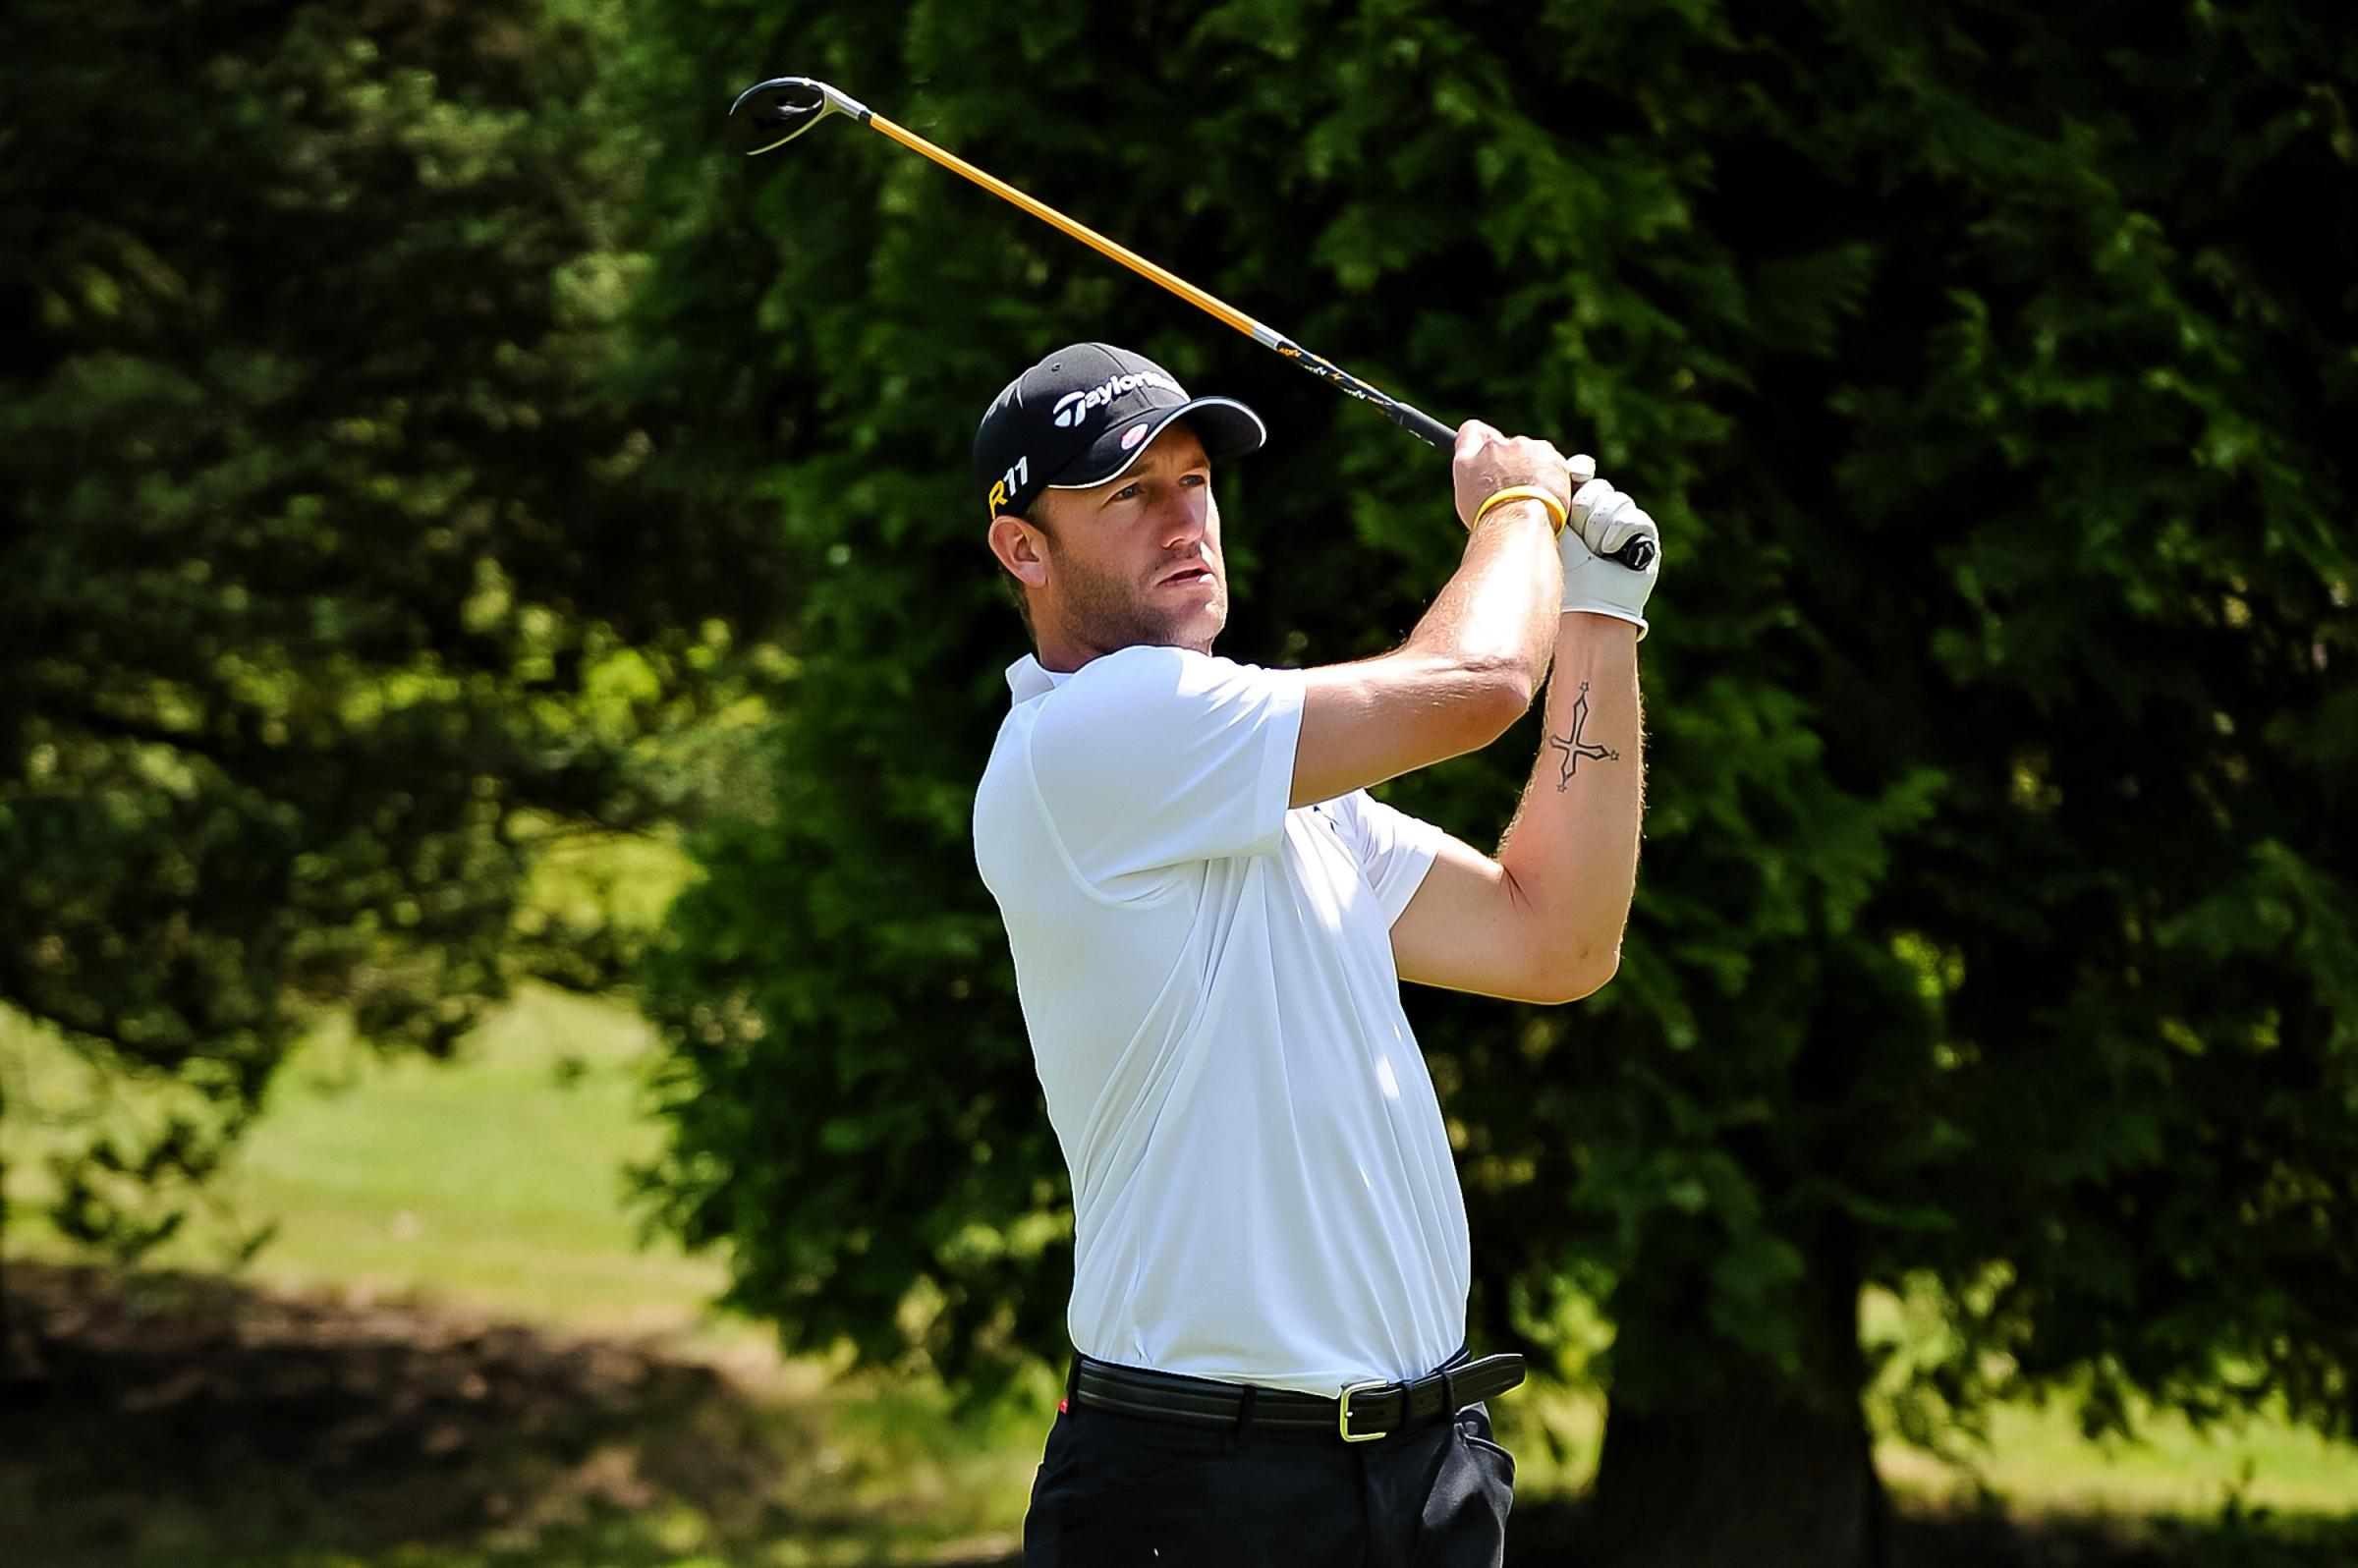 Former Hampshire cricketer Sean Ervine is targeting a professional golf career (Dave Vokes Photography)